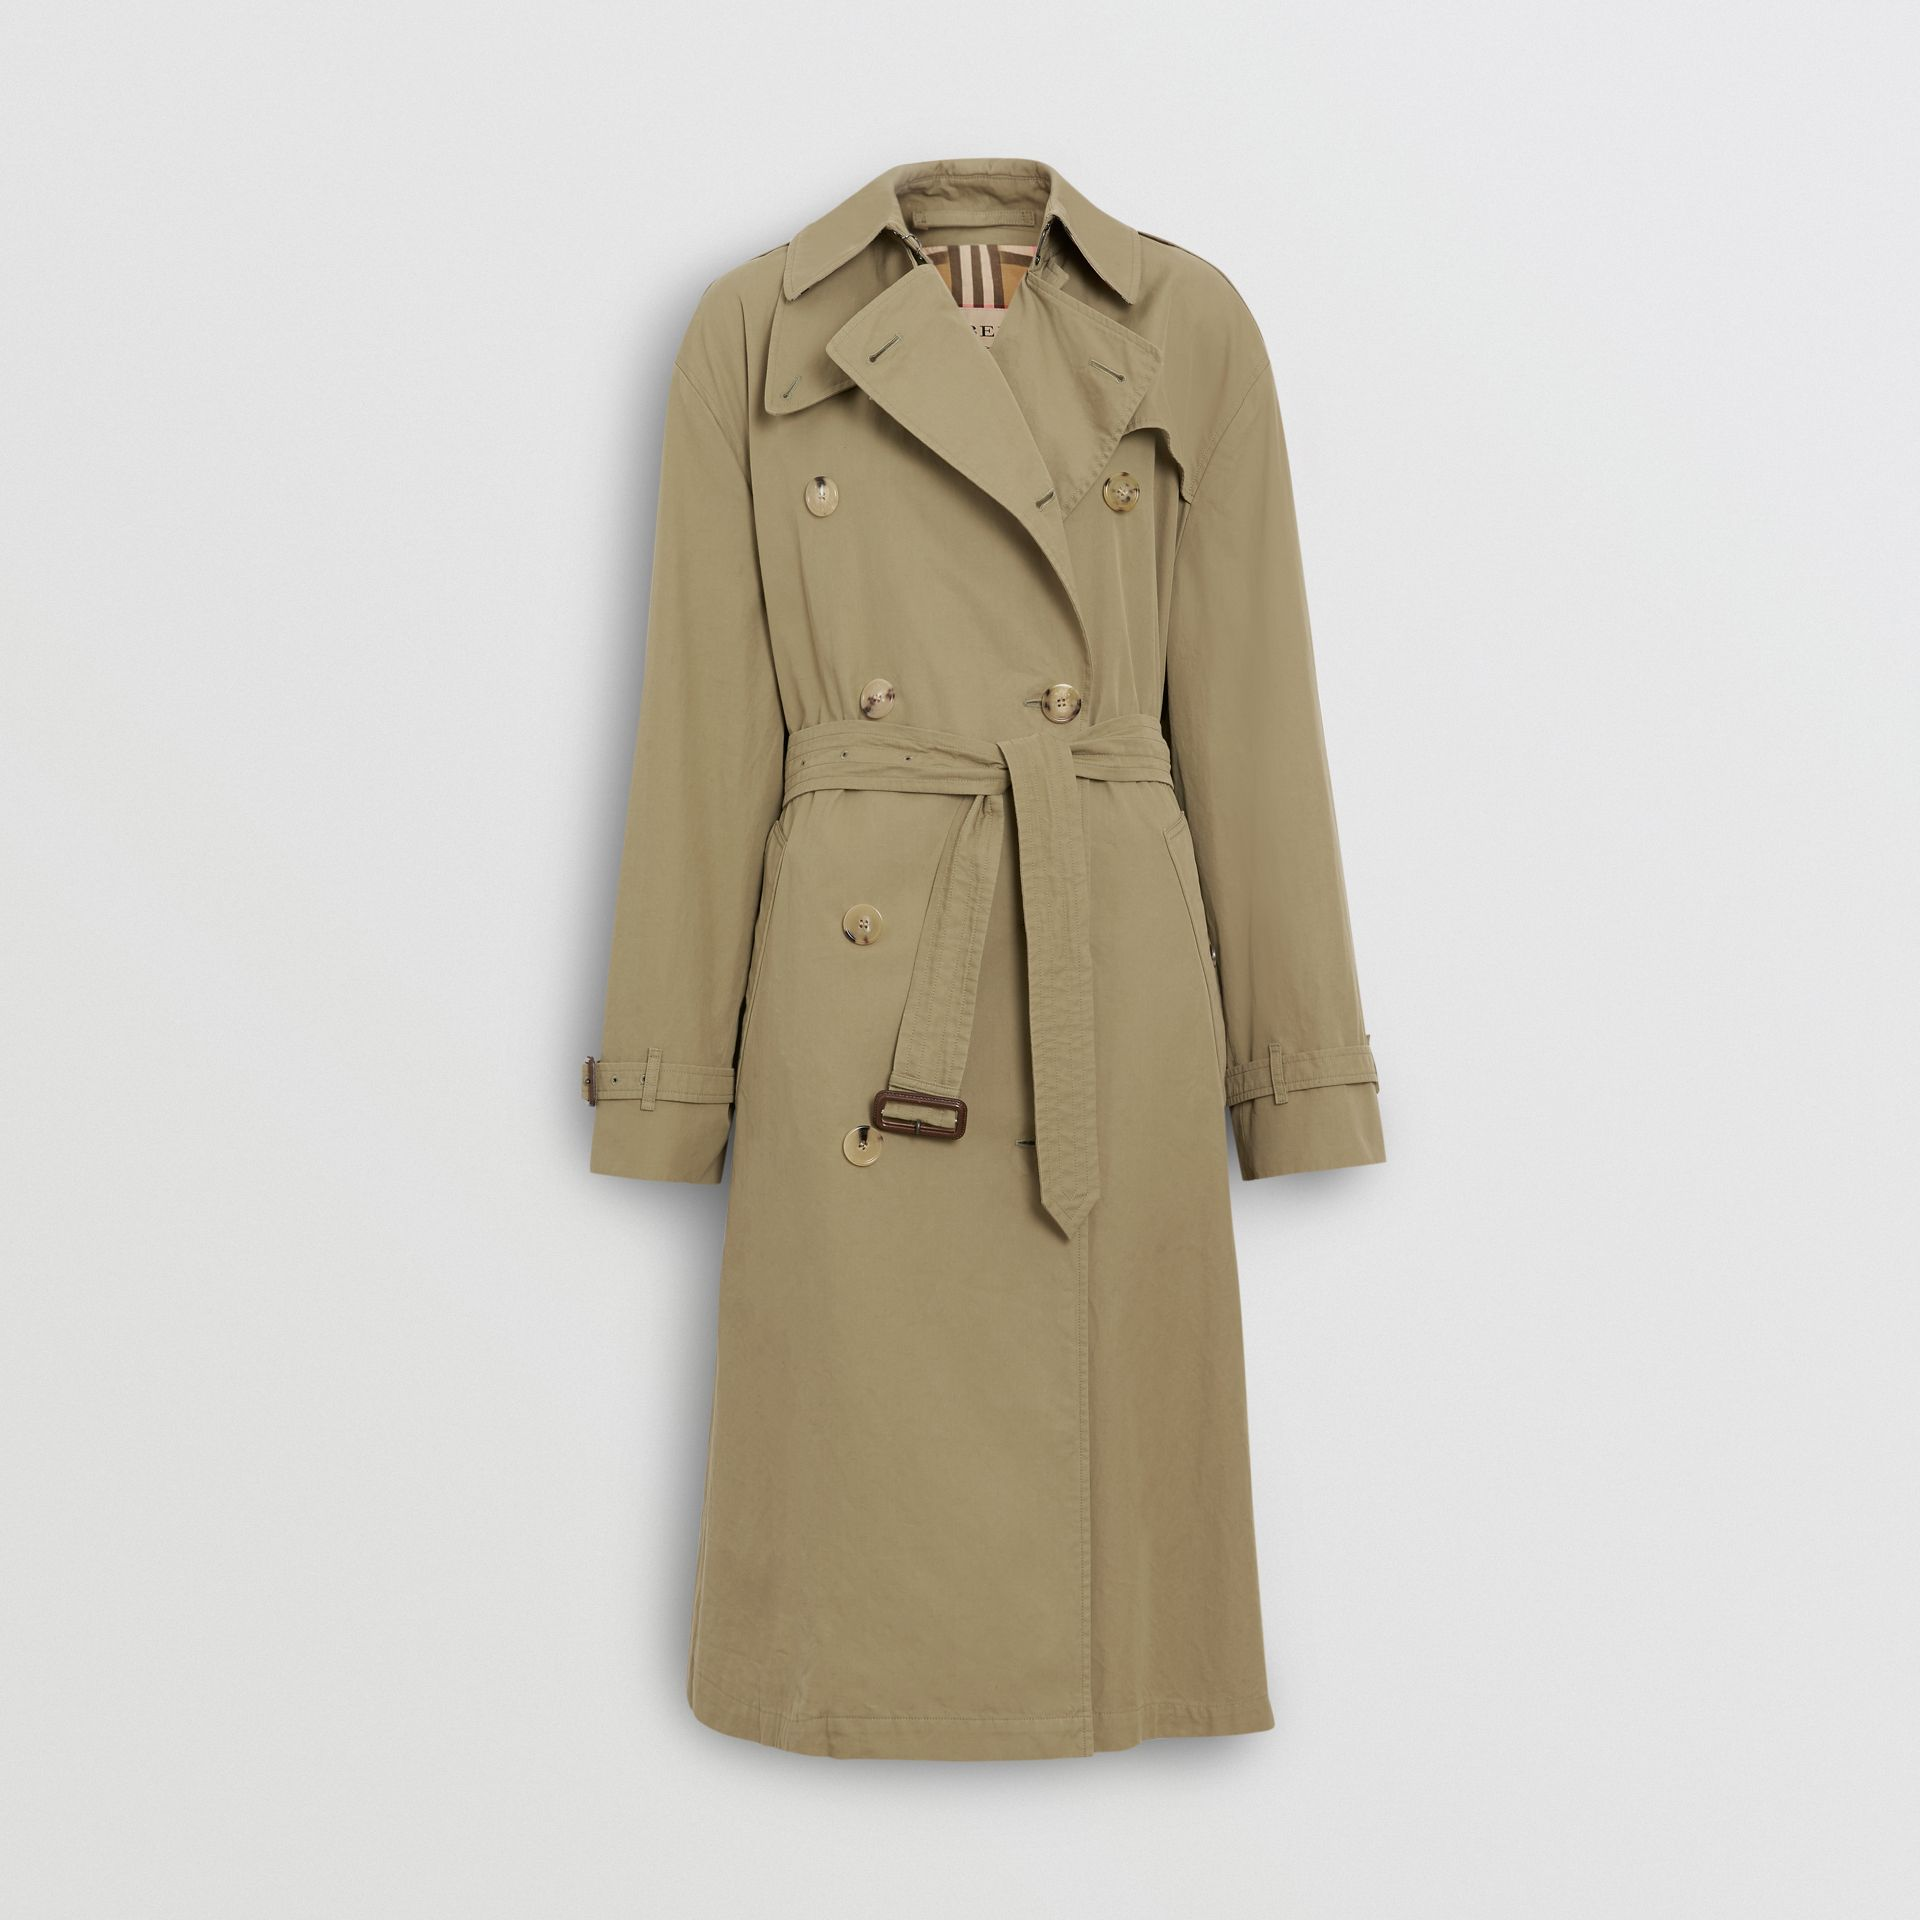 Relaxed Fit Tropical Gabardine Trench Coat in Vintage Green - Women | Burberry United States - gallery image 3